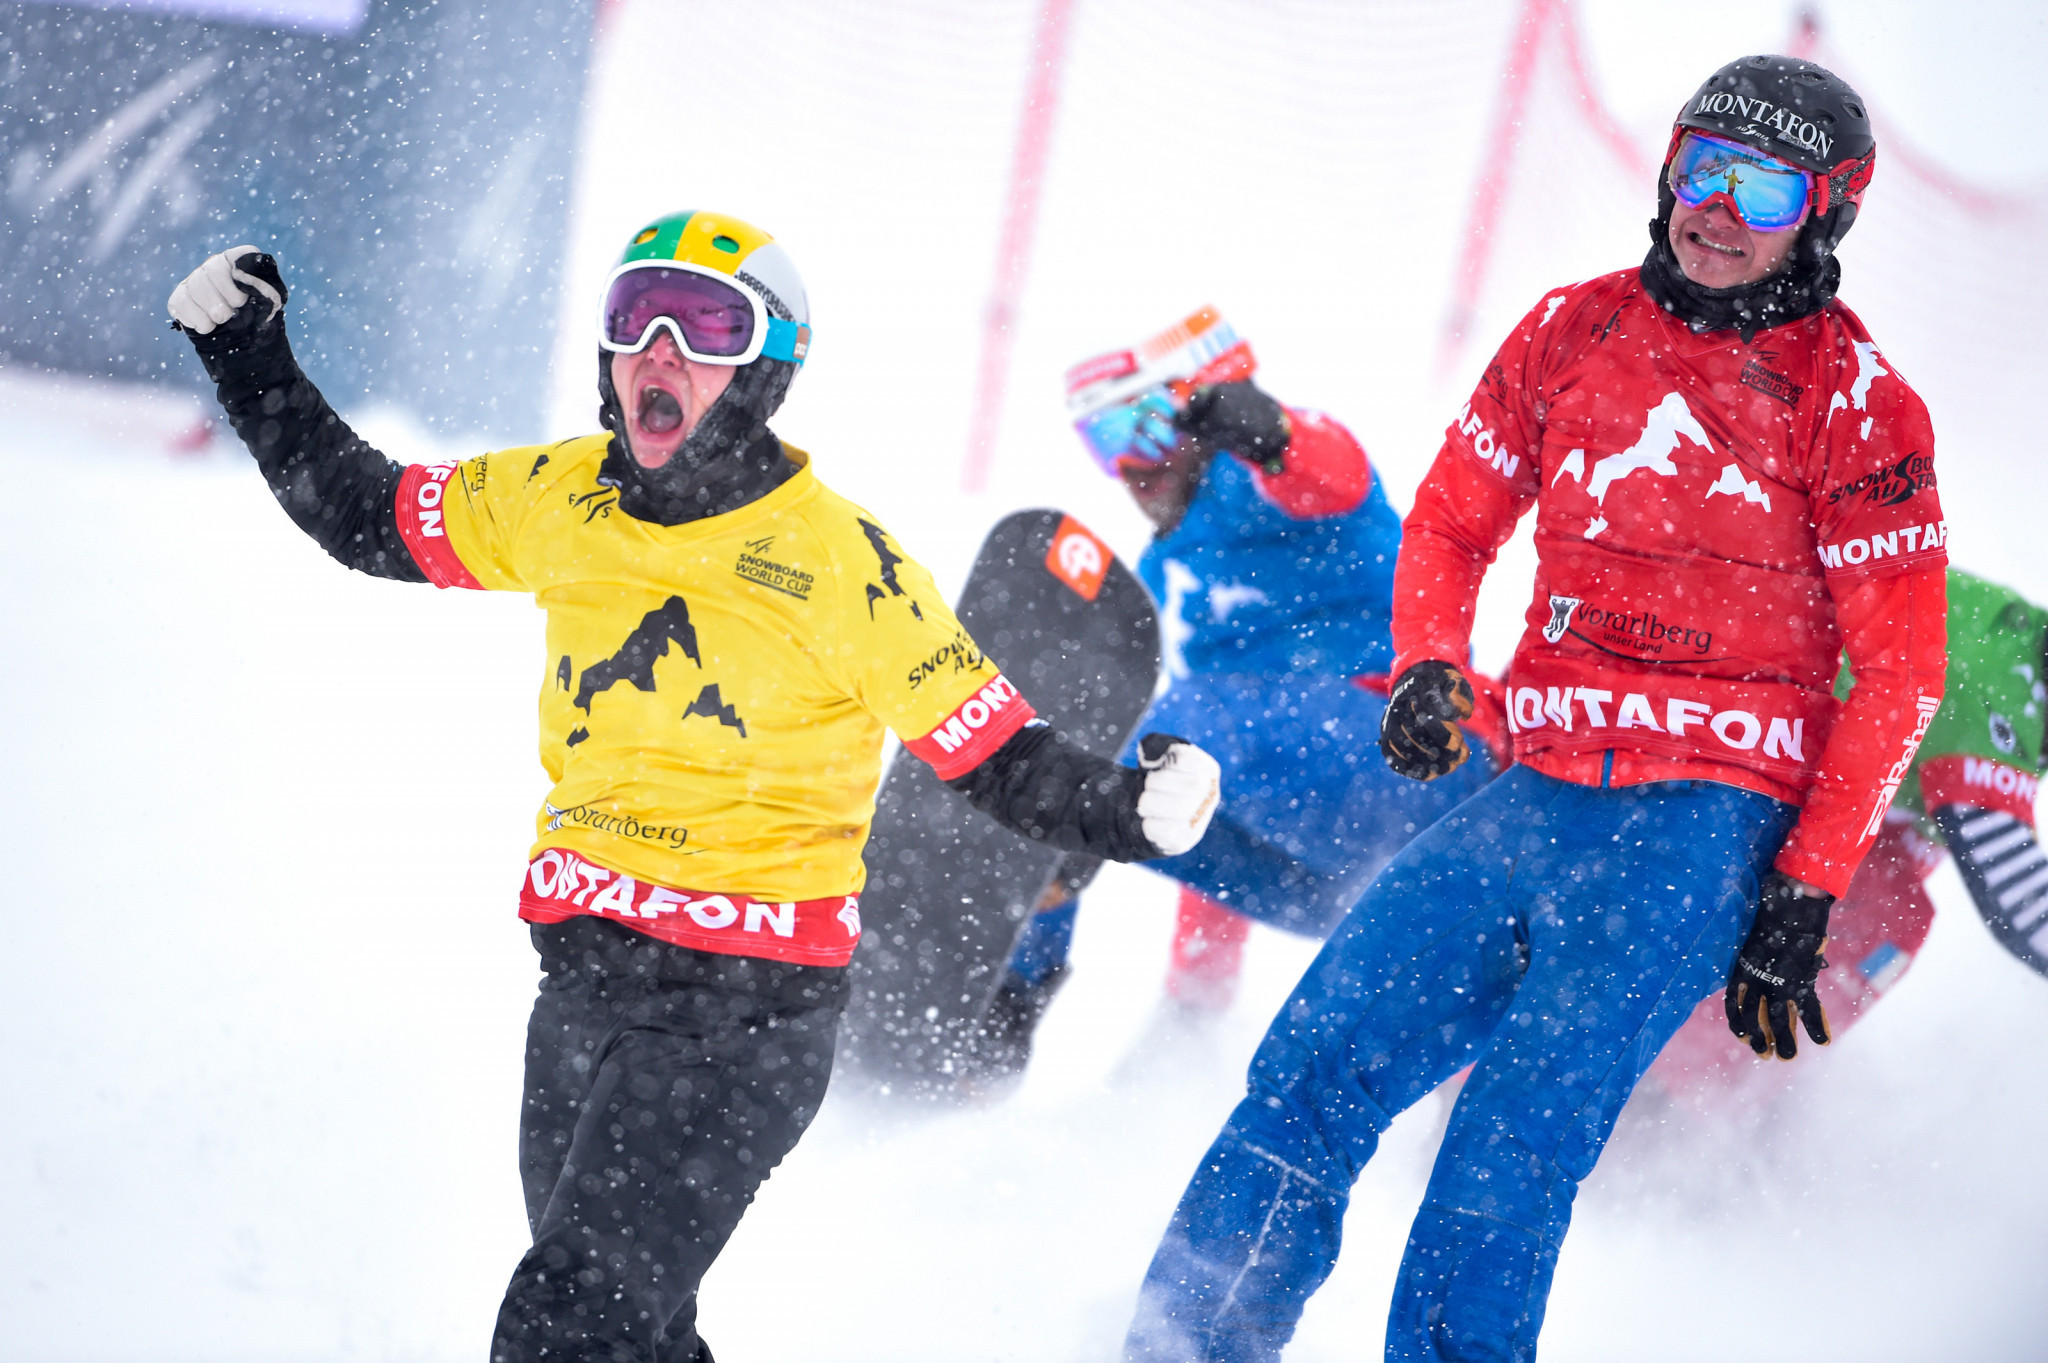 Hughes and Moioli win Snowboard Cross World Cup titles in Montafon